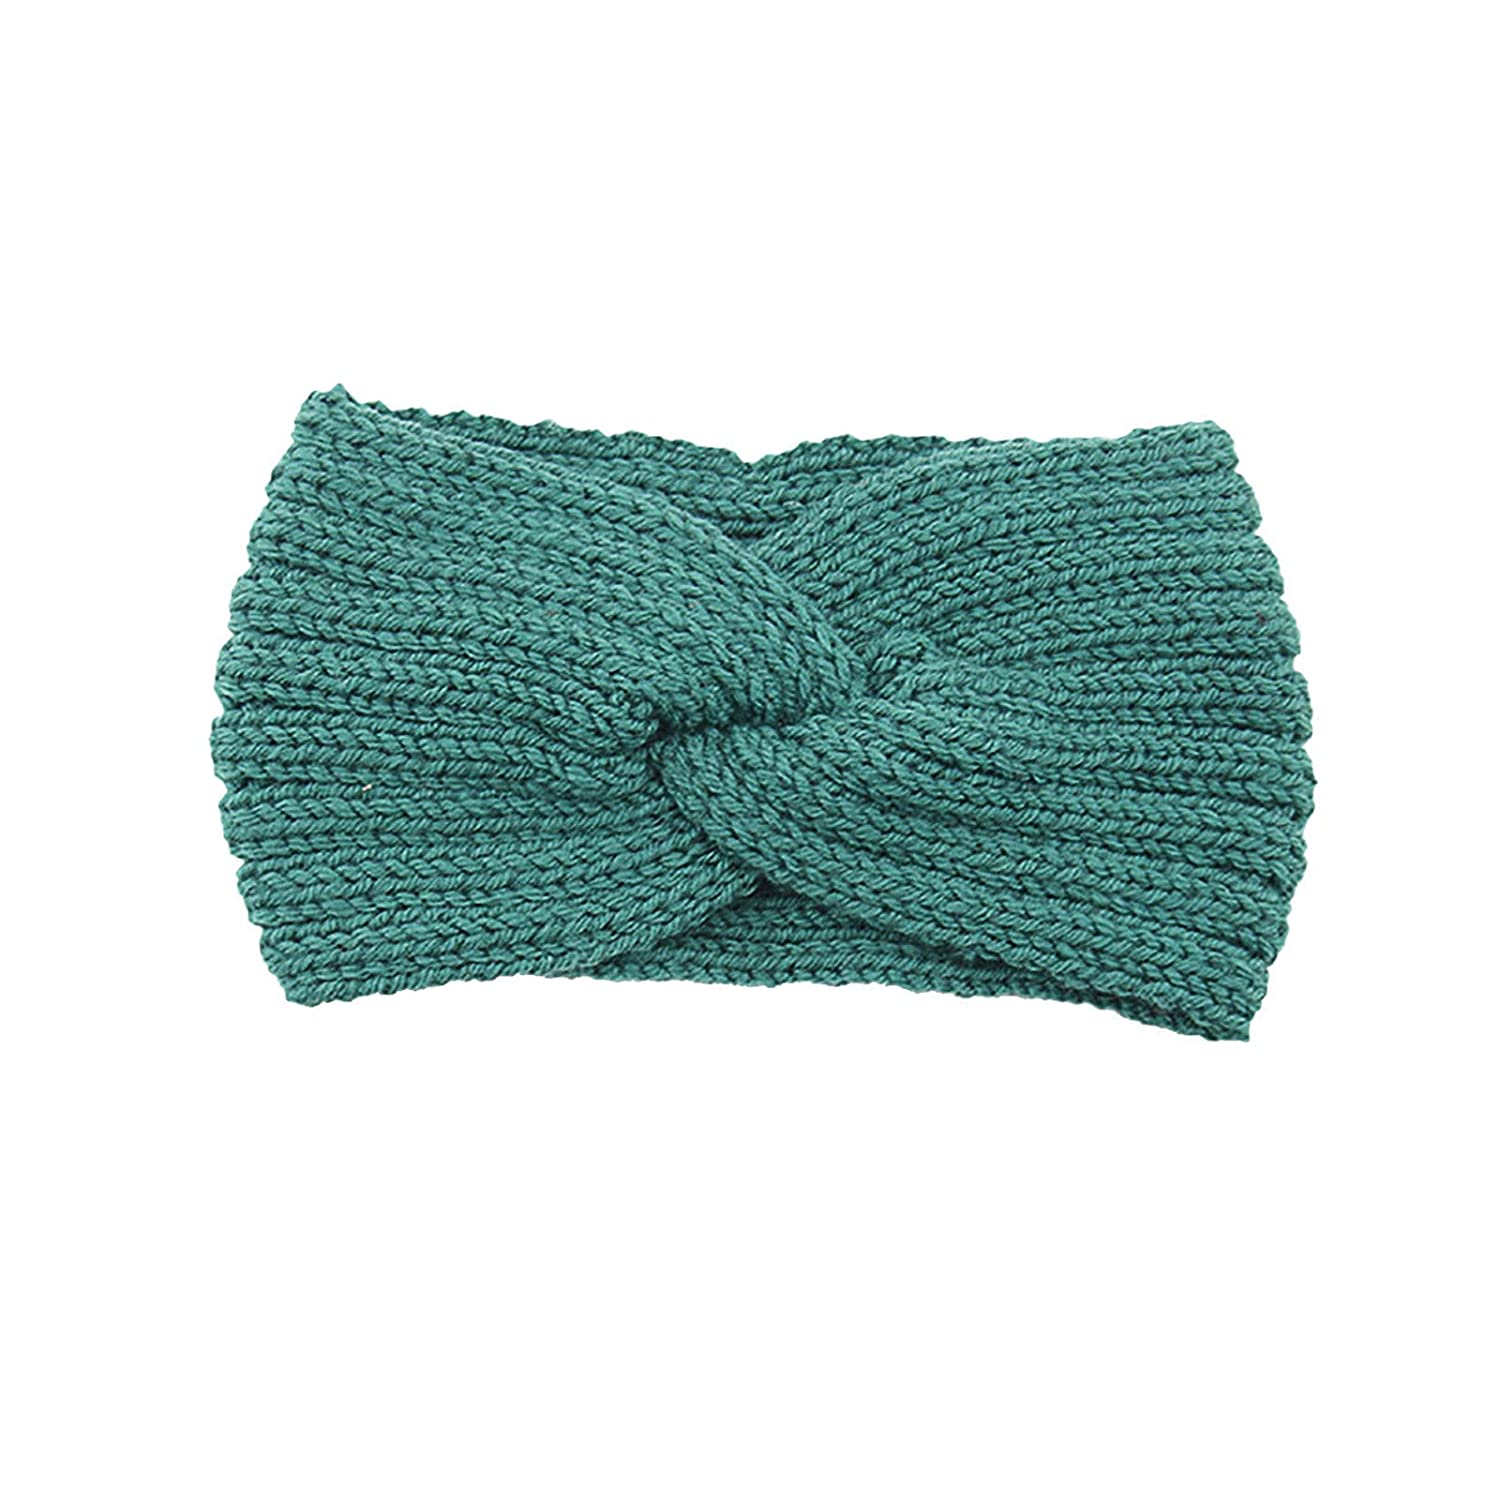 Thatso Winter Headbands for Women, Ear Warmer Headband with Buttons, Soft Stretchy Thick Cable Knitted Turban Hairband Gift (Green,One Size)